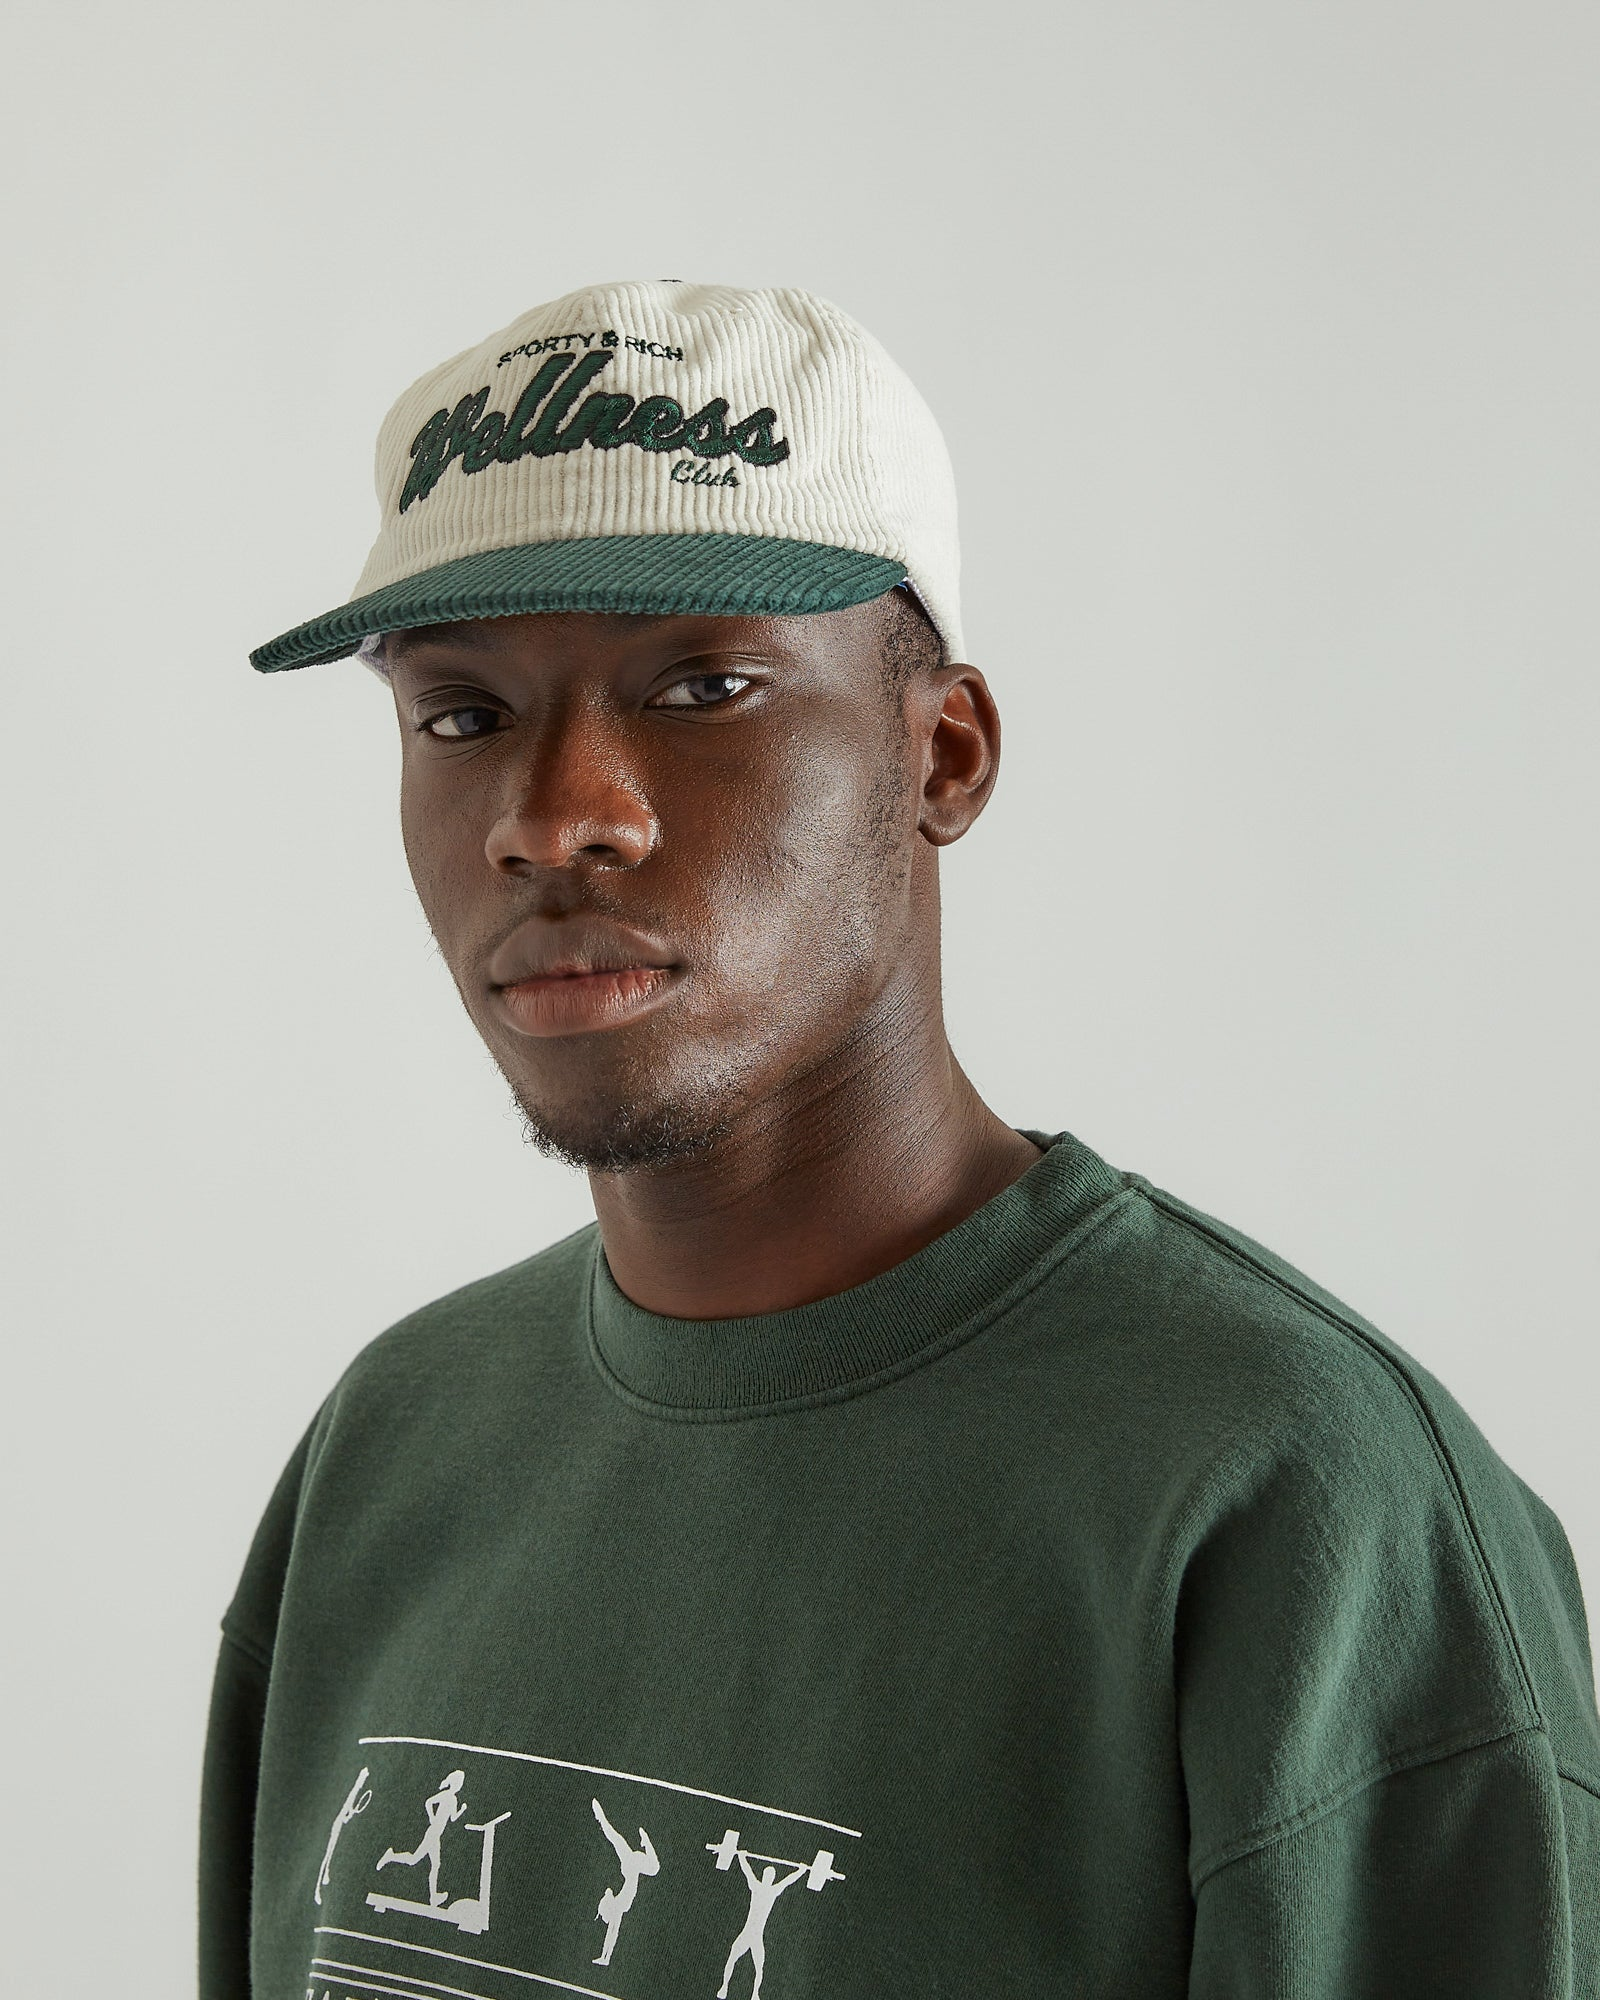 Wellness Club Hat in Corduroy White/Green